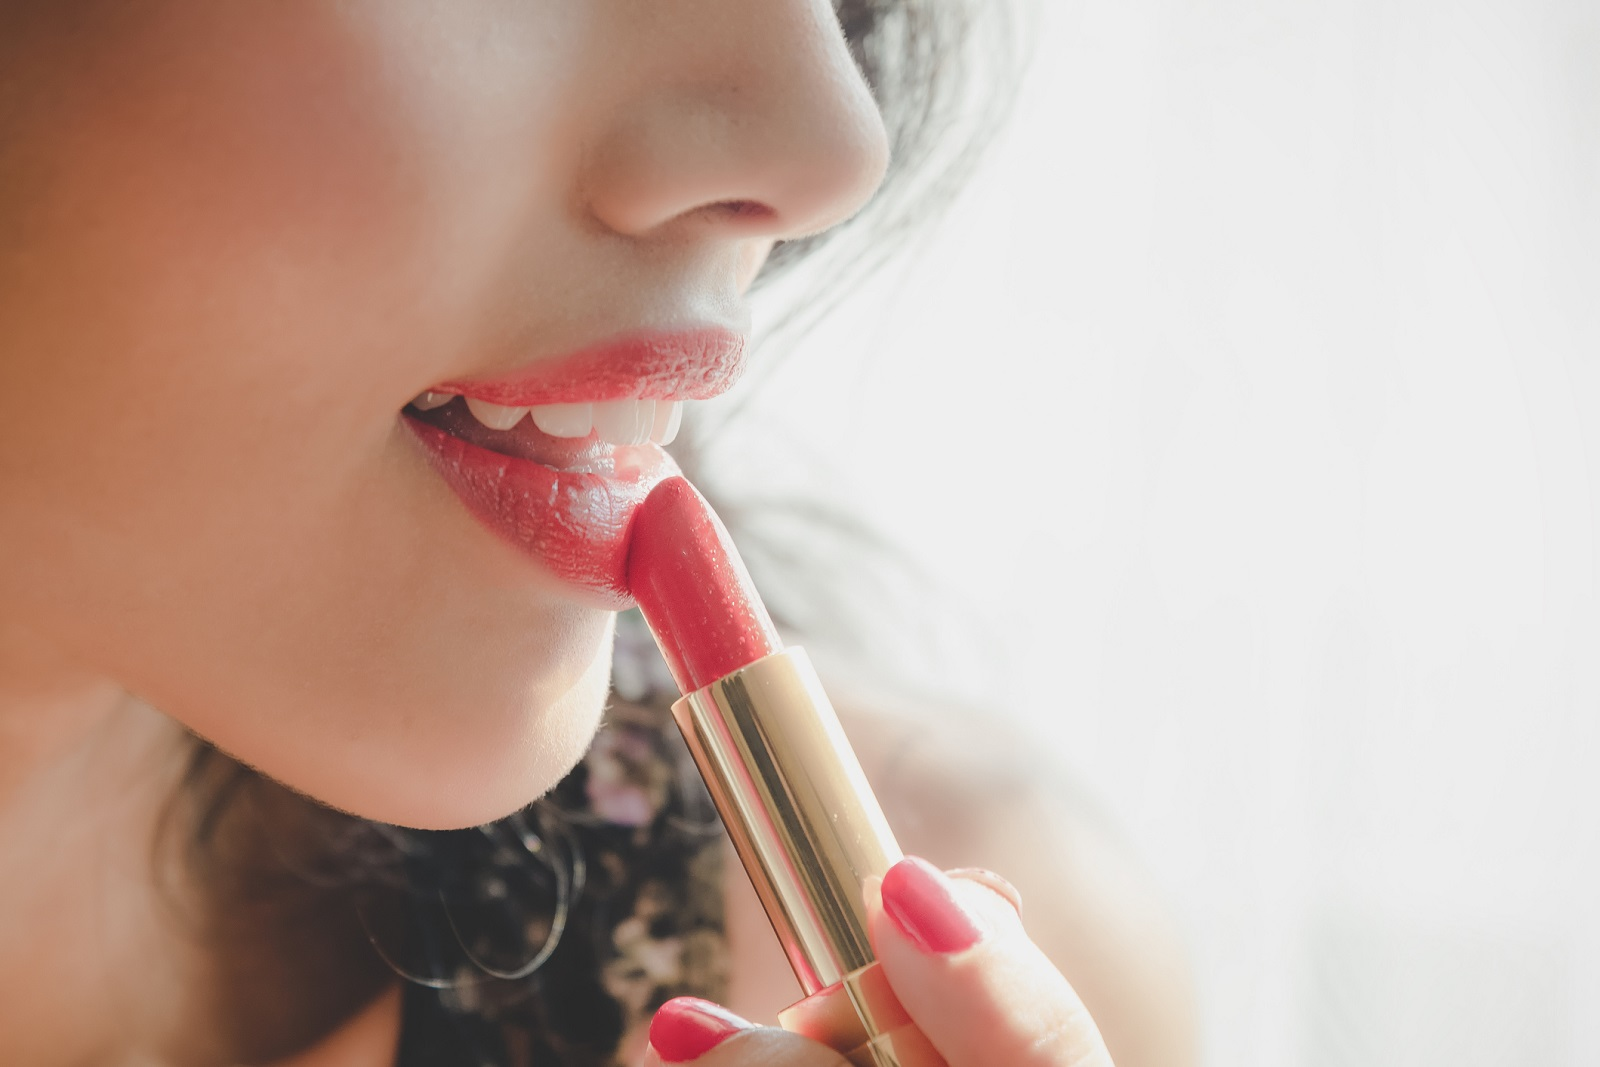 Close up beautiful luxury young woman applying lip liner to nude red lips. Close up shot and make up cosmetic of woman putting lipstick on her lip.